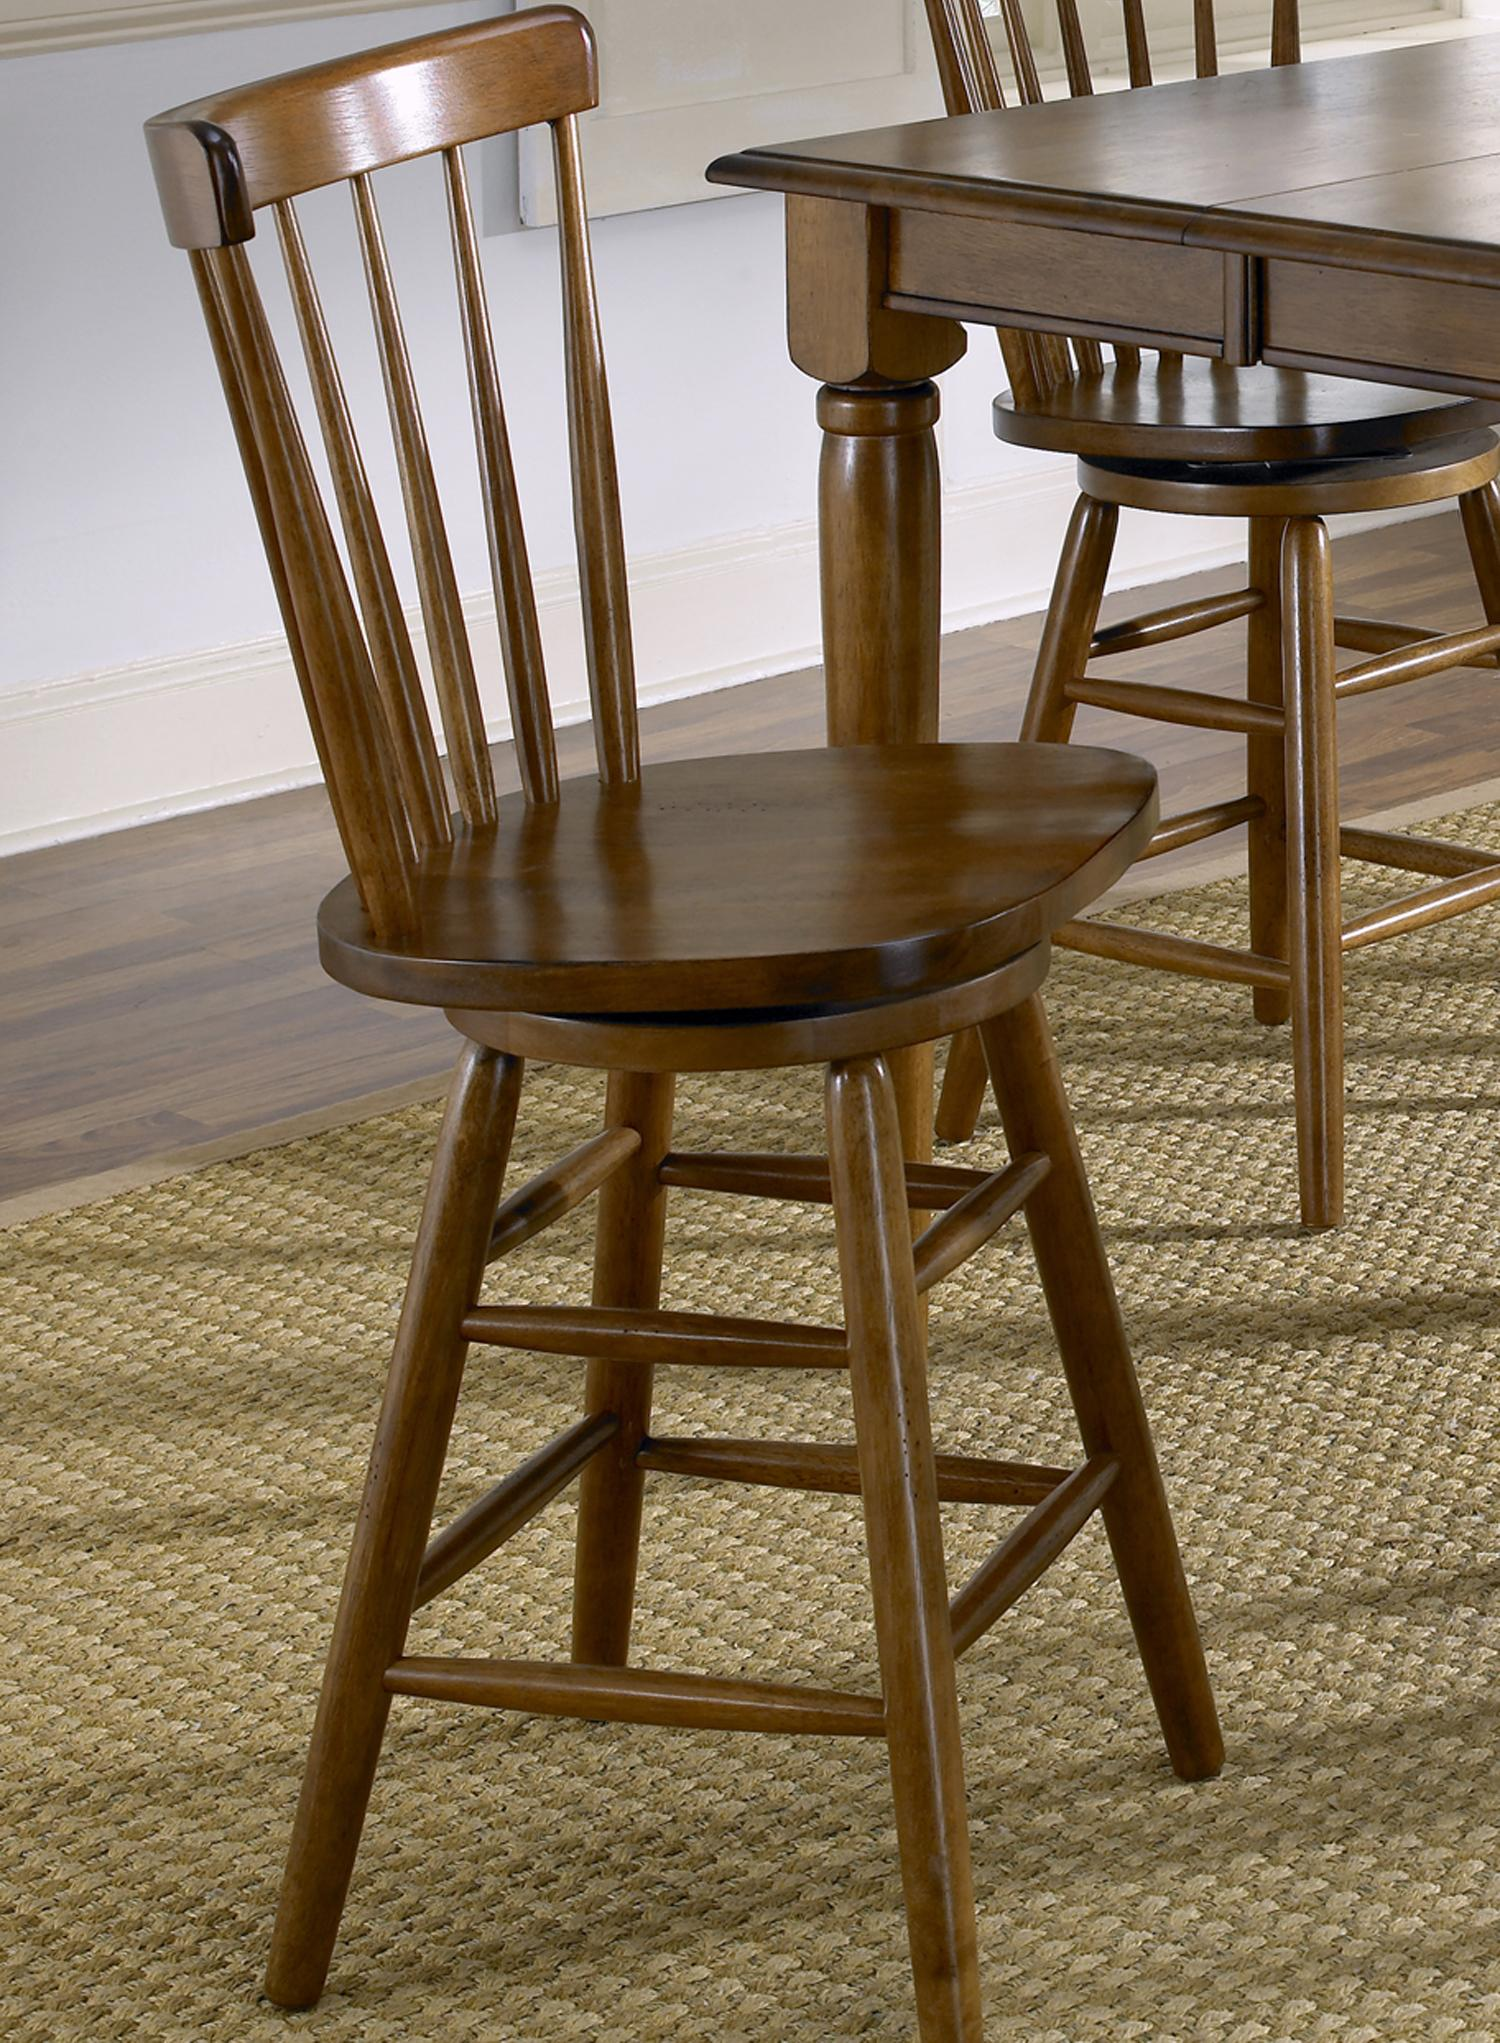 Liberty Furniture Creations II 30 Inch Bar Stool - Item Number: 38-B1730